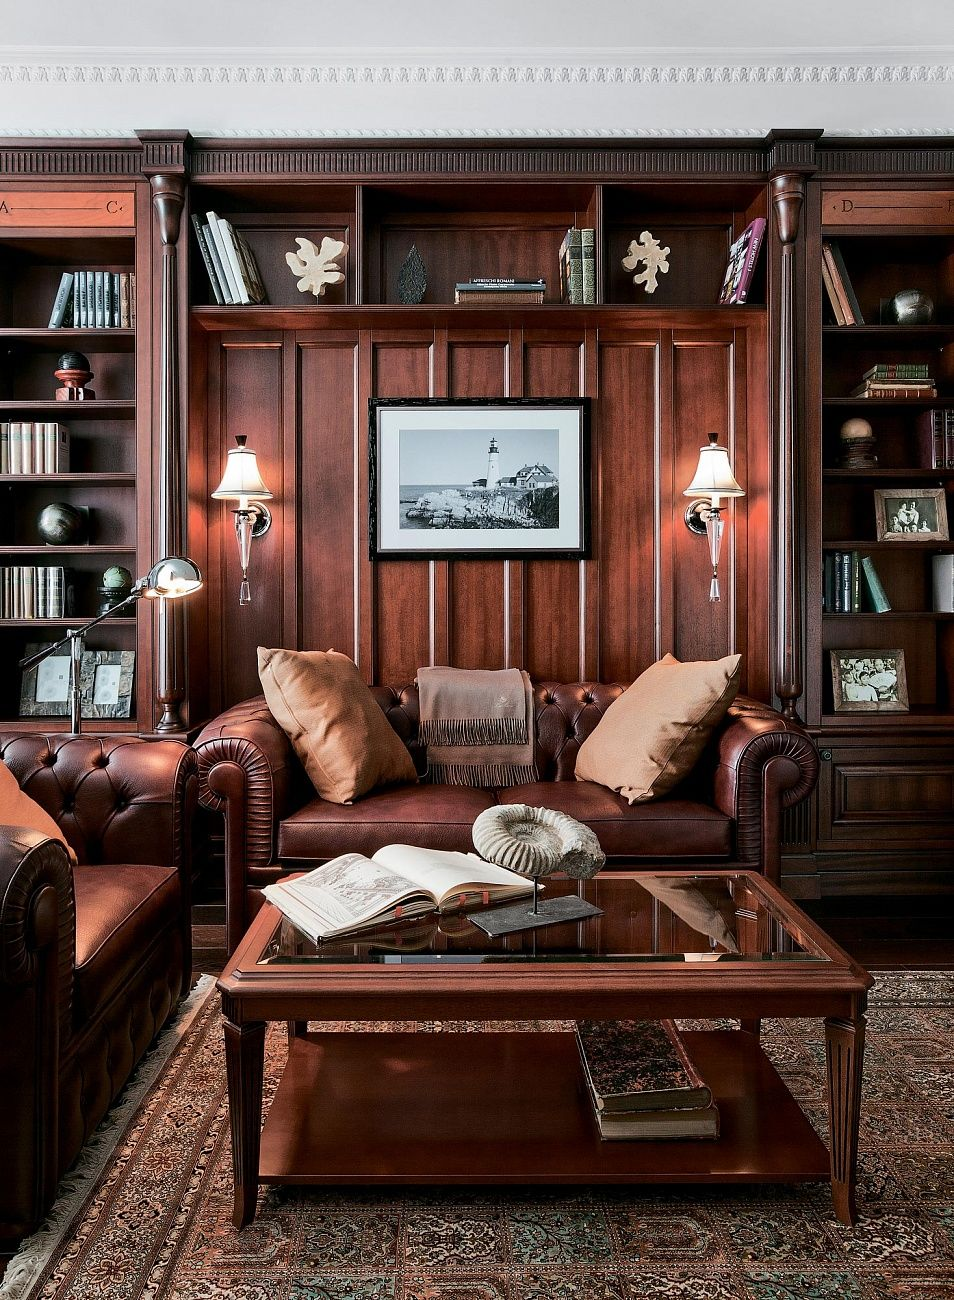 Wood Paneled Office: Nicely Done Wood Paneled Room And Leather Furniture